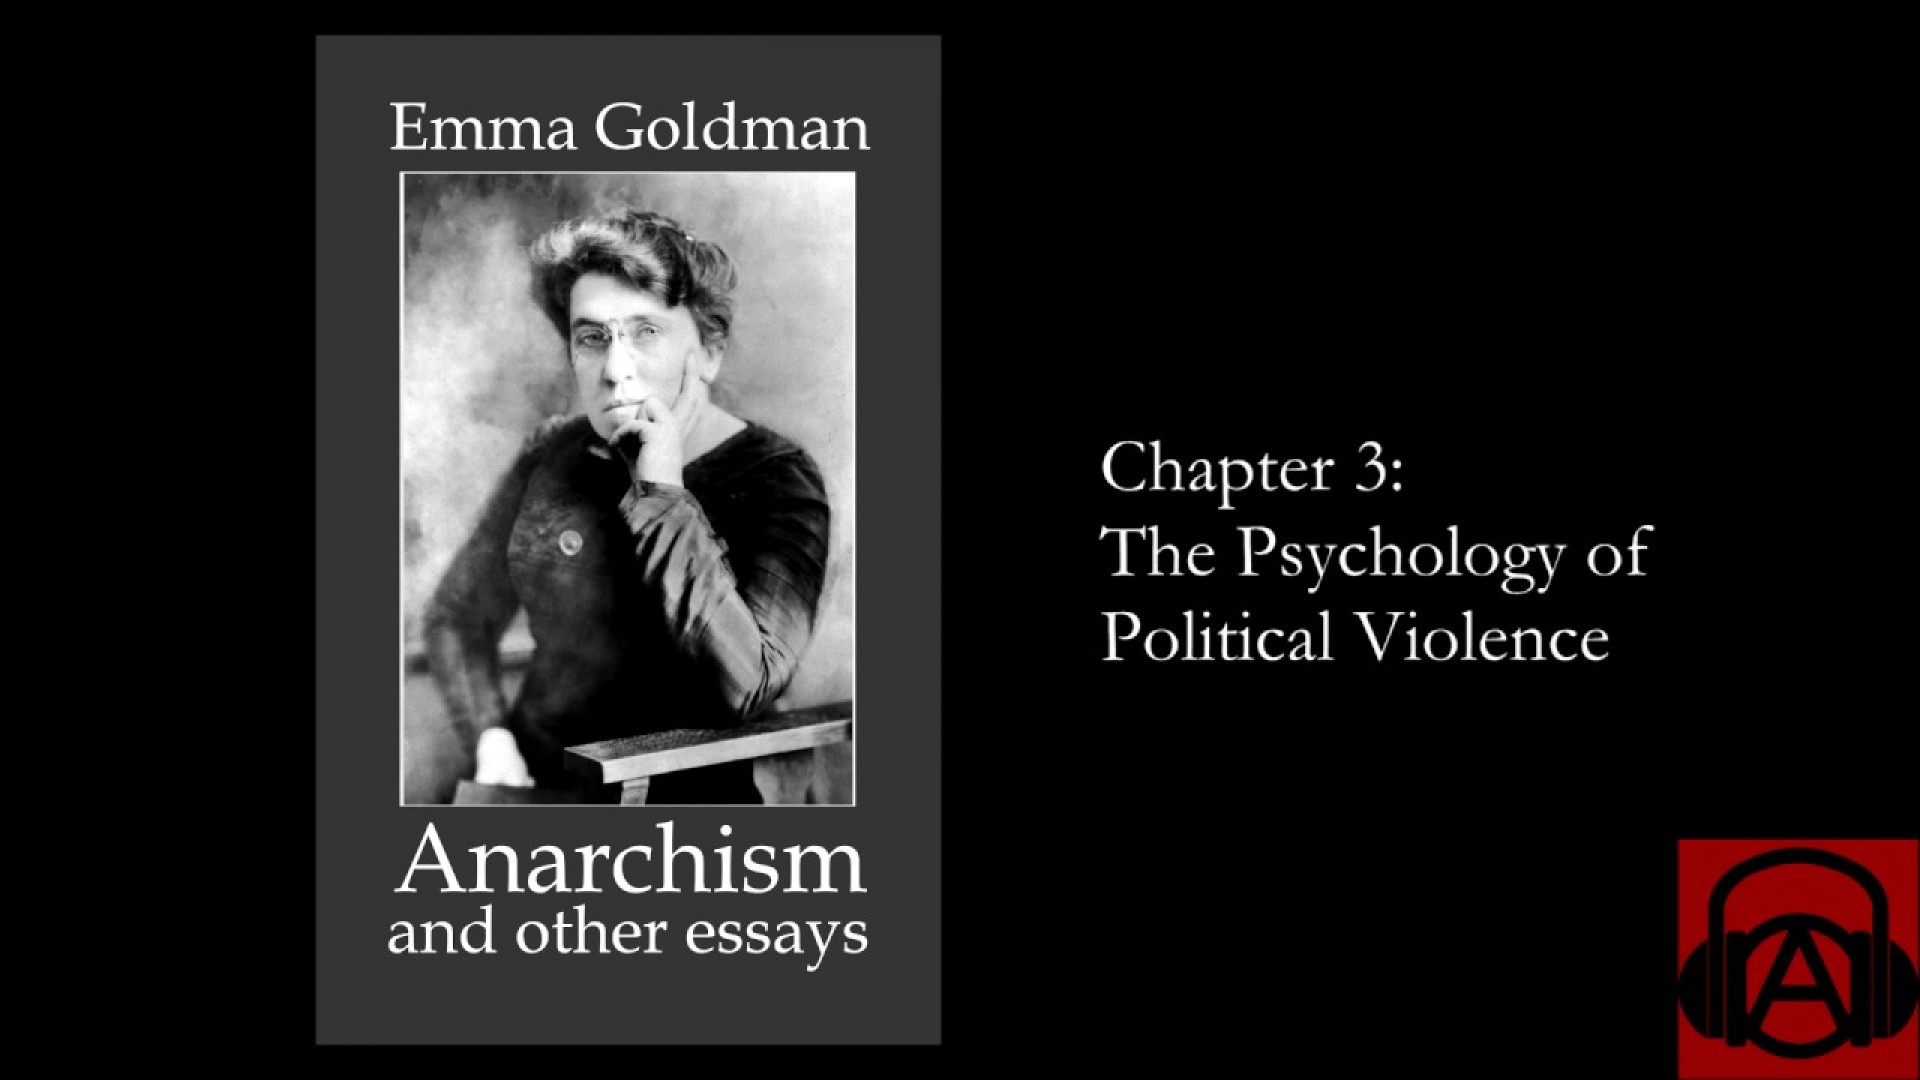 016 Anarchism And Other Essays Essay Example Incredible Emma Goldman Summary Pdf 1920